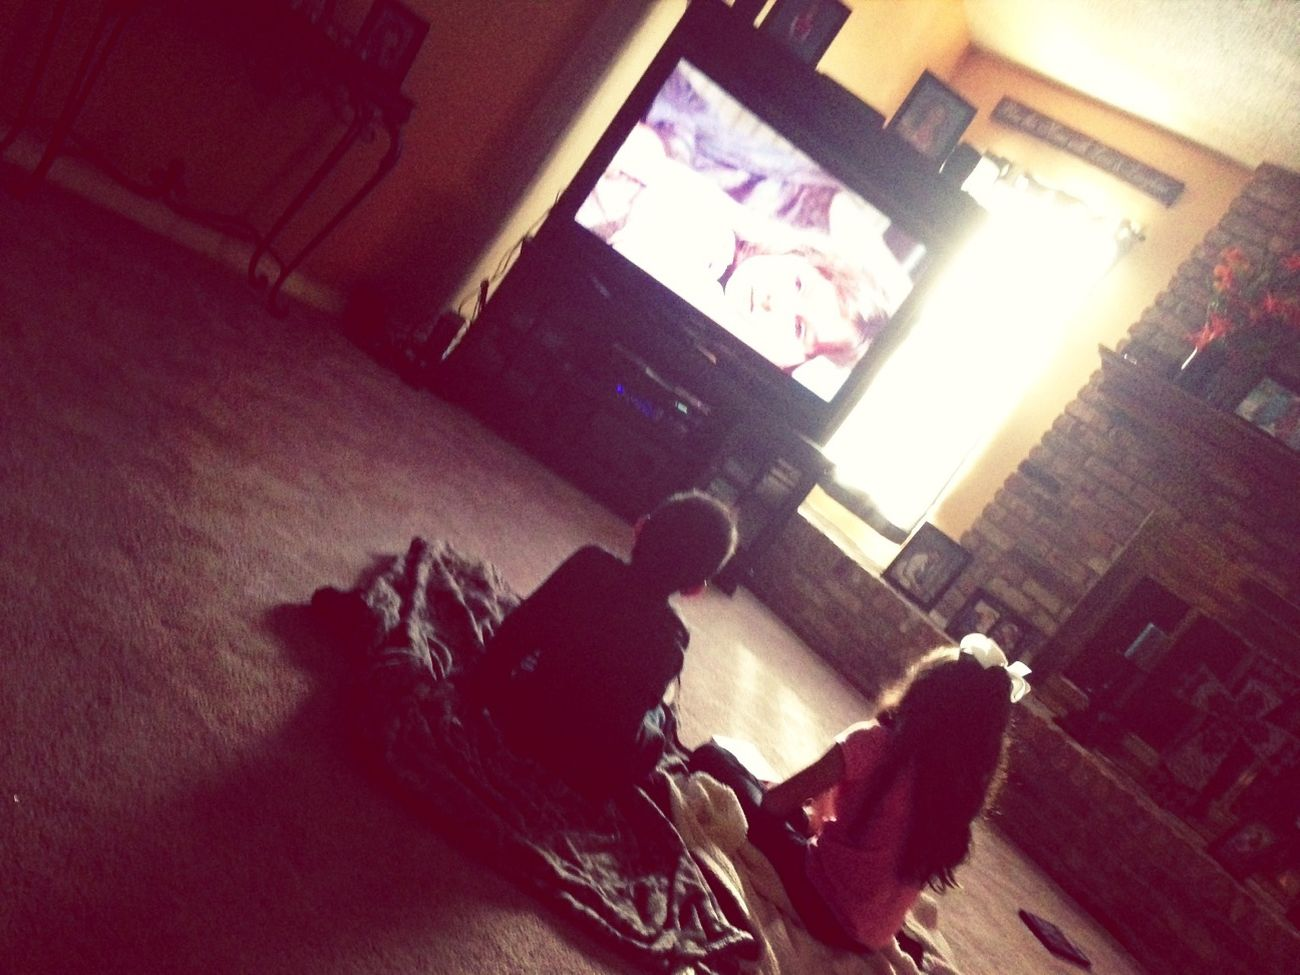 Watching These Kids(: